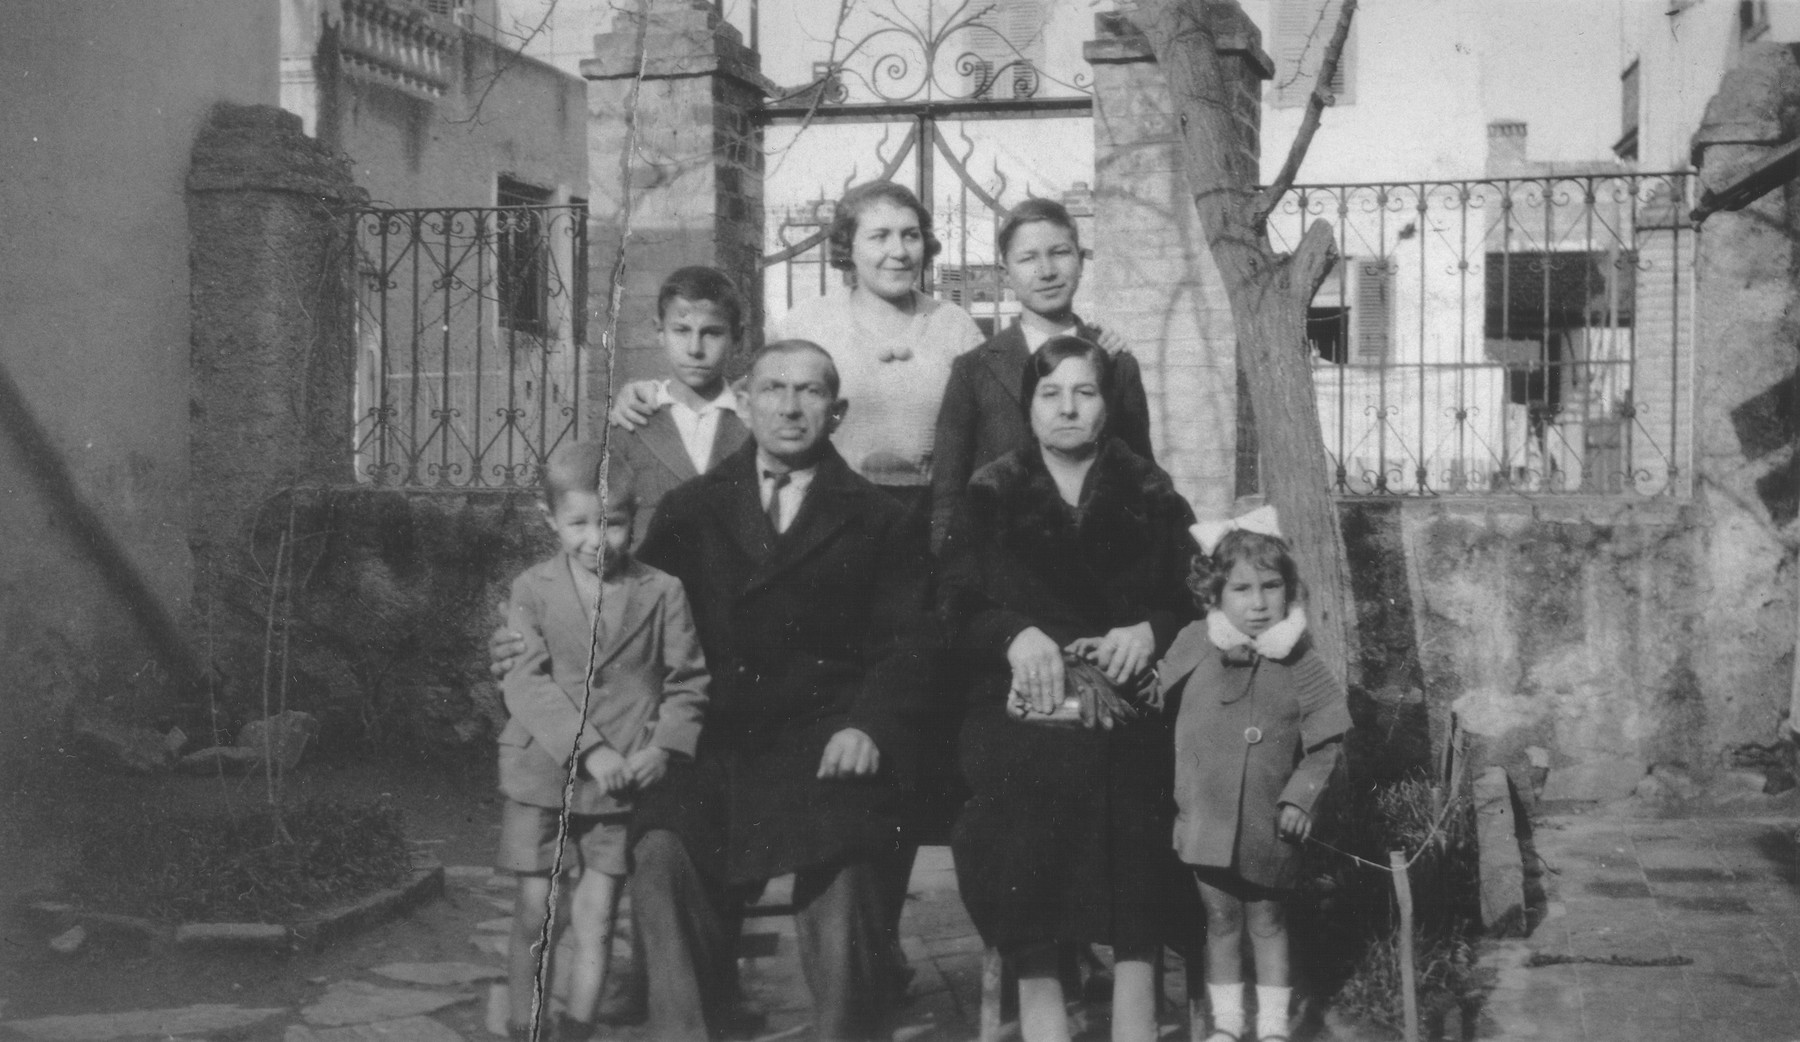 Portrait of the Beraha family in the courtyard of their home in Salonika.    Pictured are Eliahu and Sol Beraha (center) and their children: Yeshua (left), Alberto (back row, left), Miriam (back row, center), Baruch (back row, right) and a niece named Estrea (lower right).